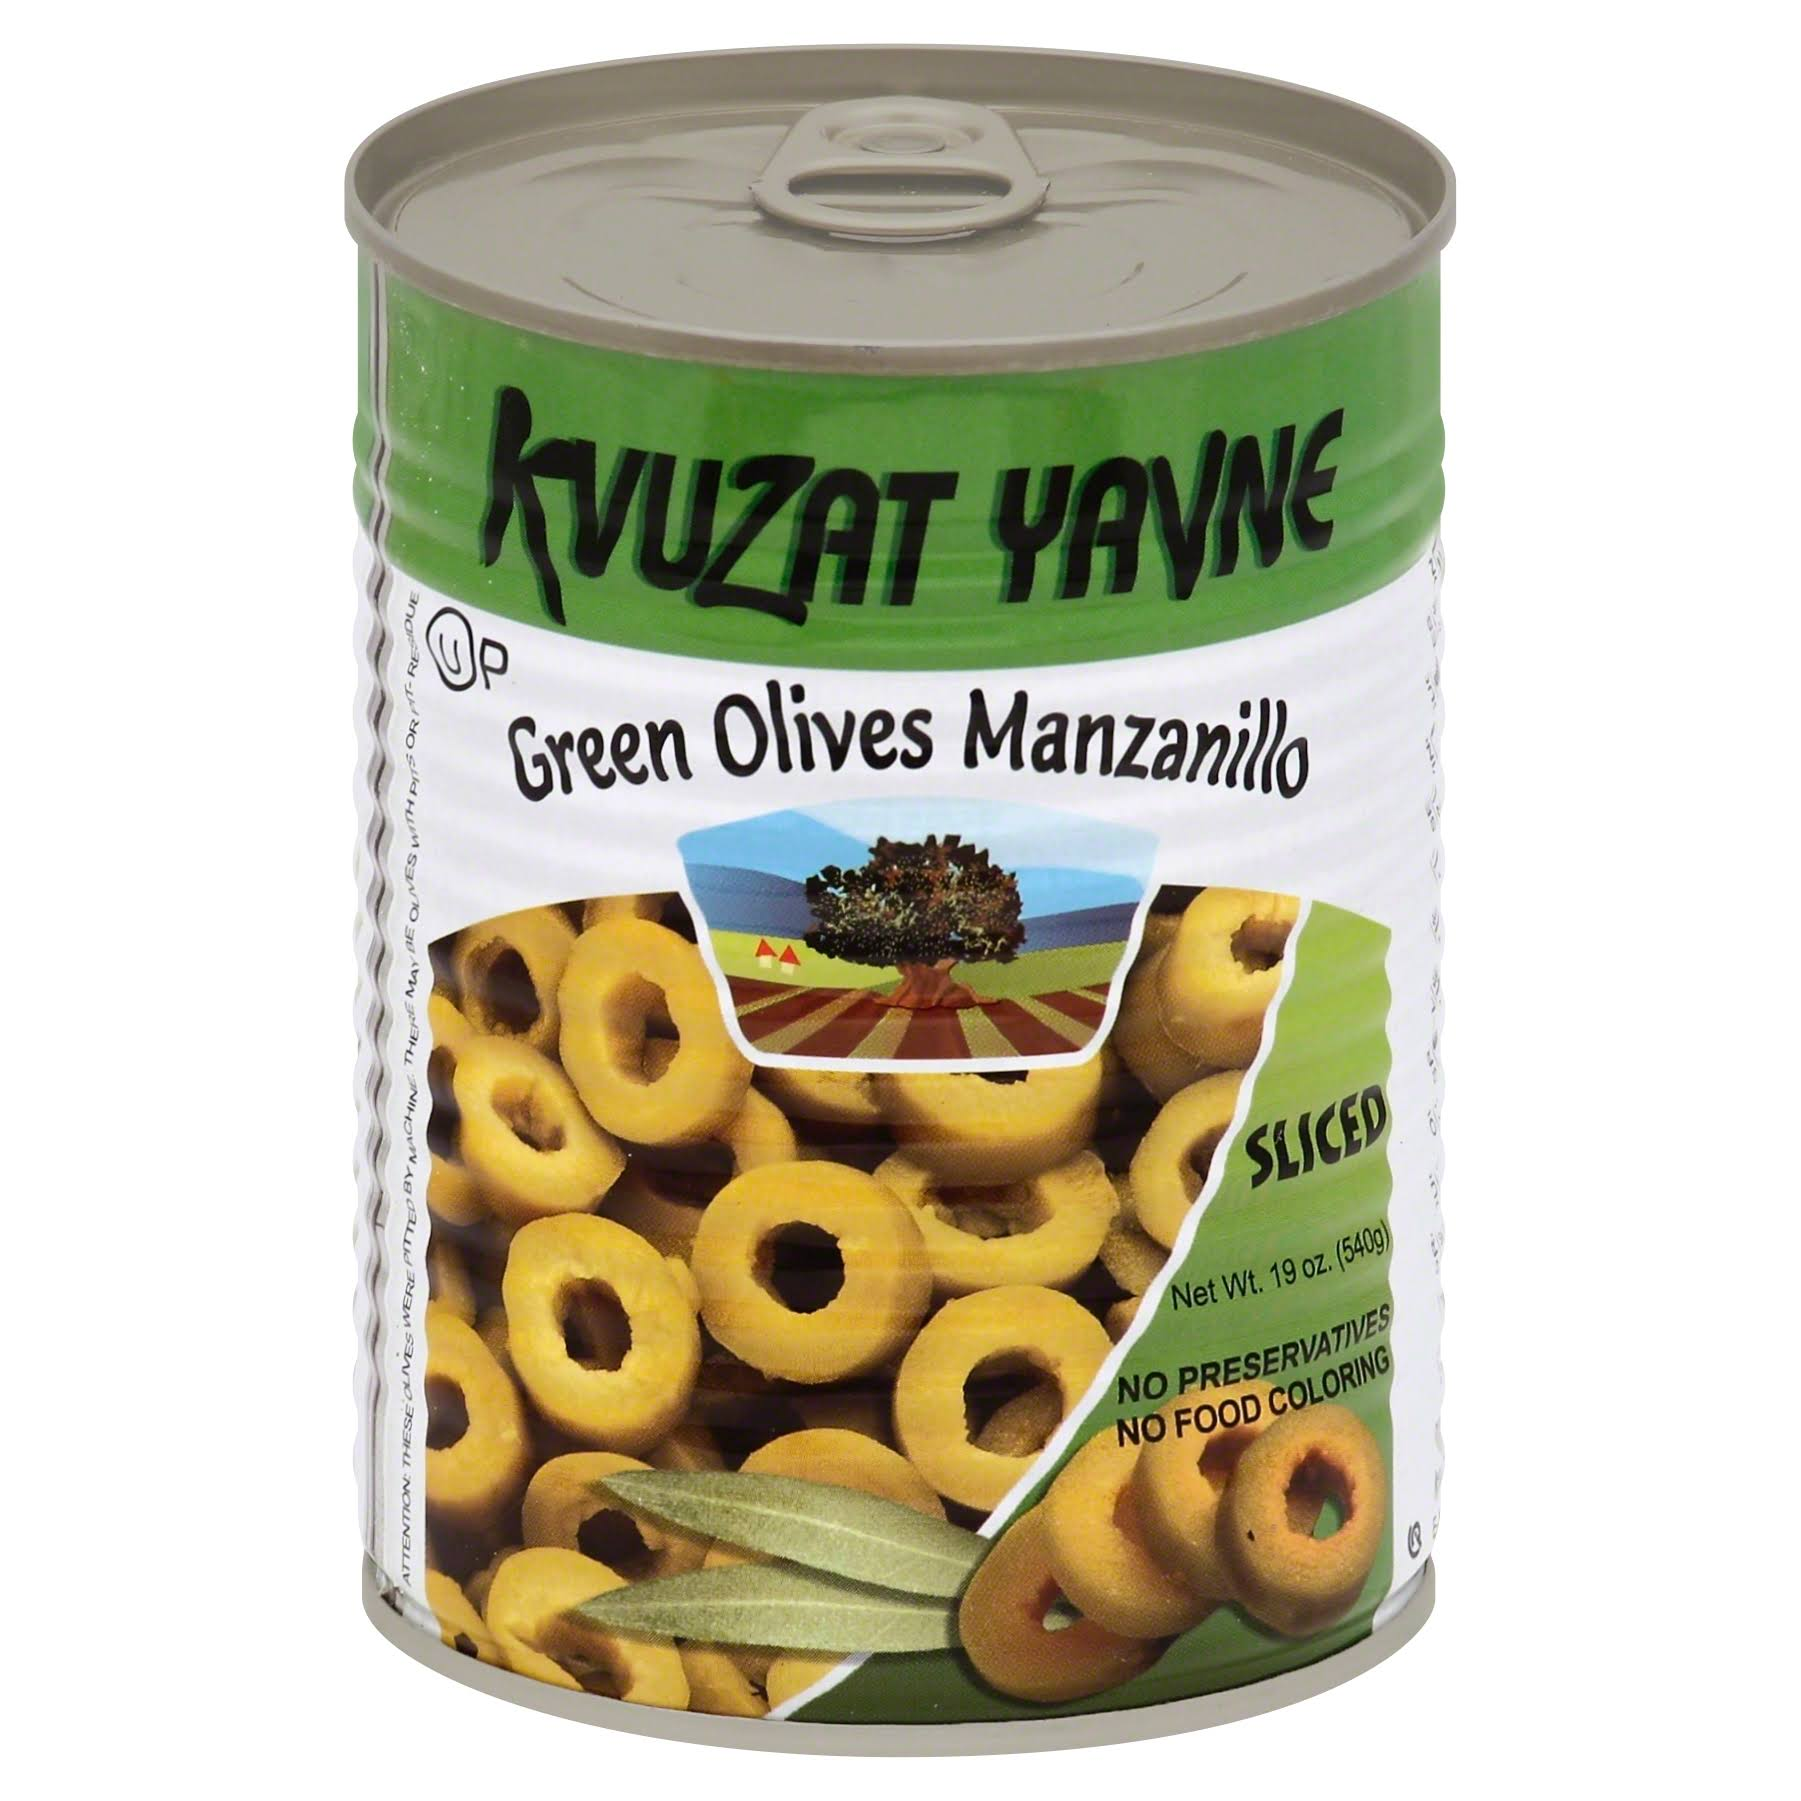 Kvuzat Yavne Olives, Green, Manzanillo, Sliced - 19 oz